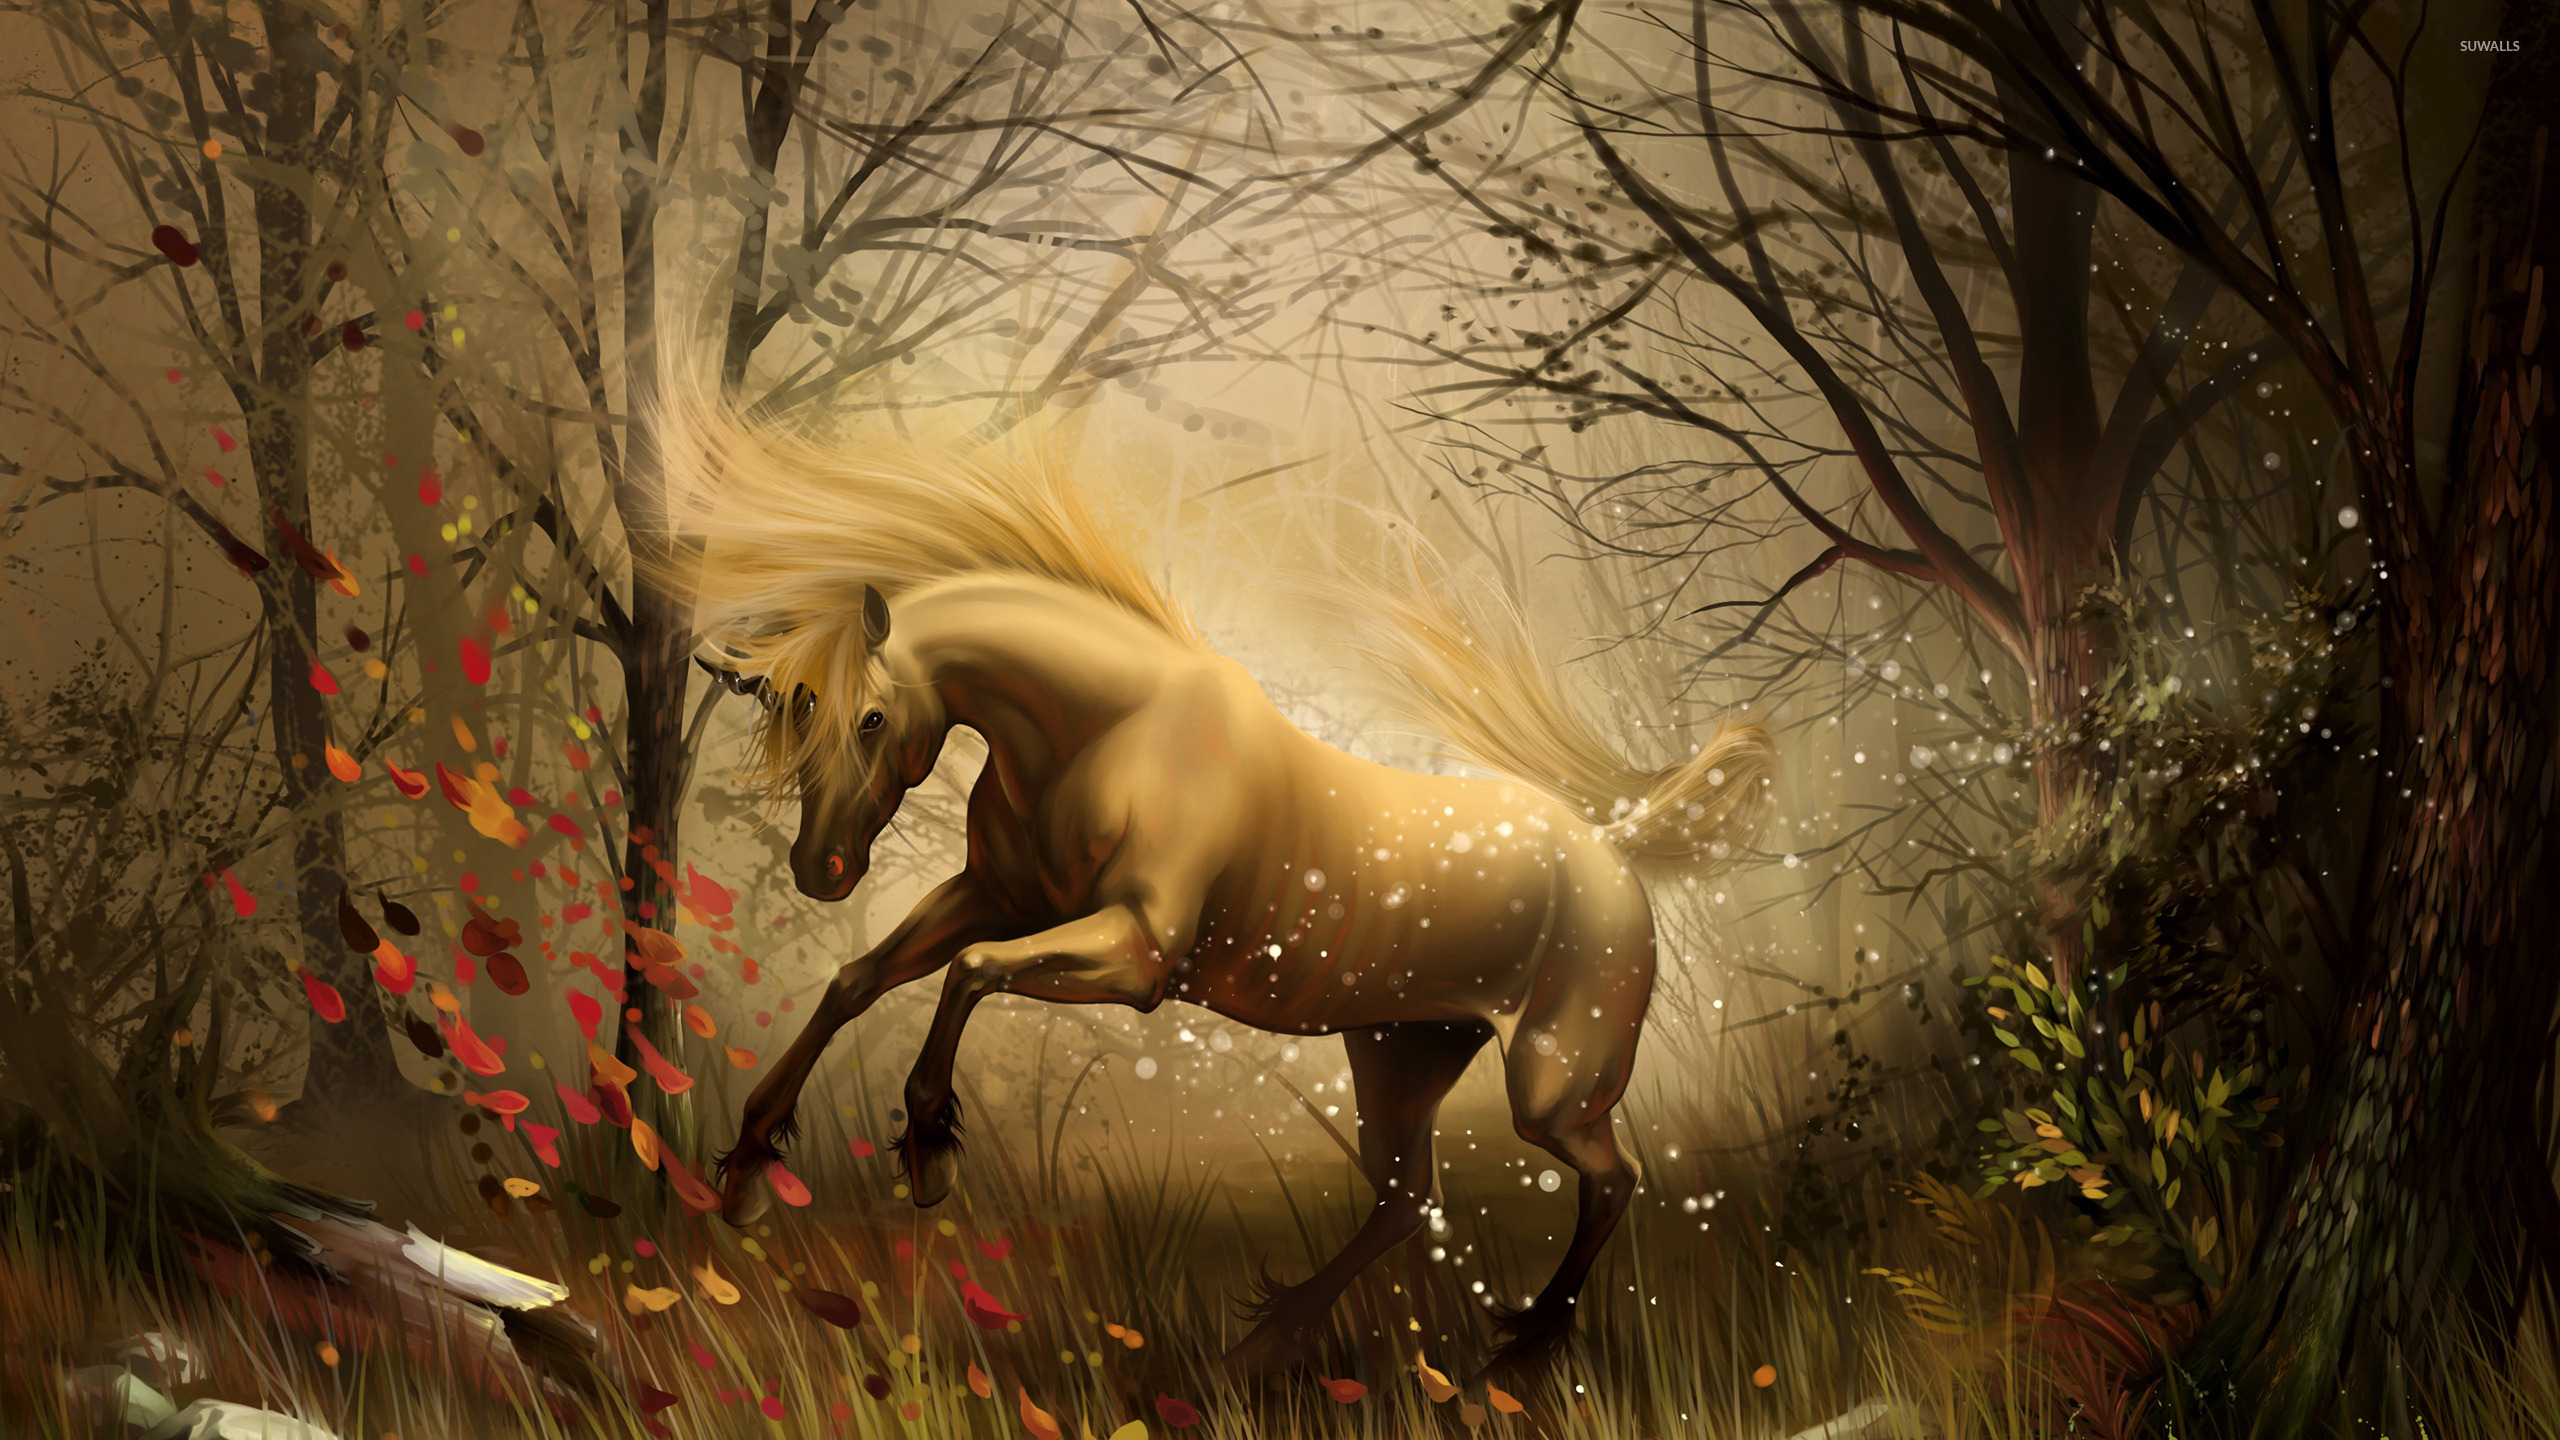 Download Wallpaper Halloween Unicorn - unicorn-in-the-enchanted-forest-23493-2560x1440  Picture_472943.jpg